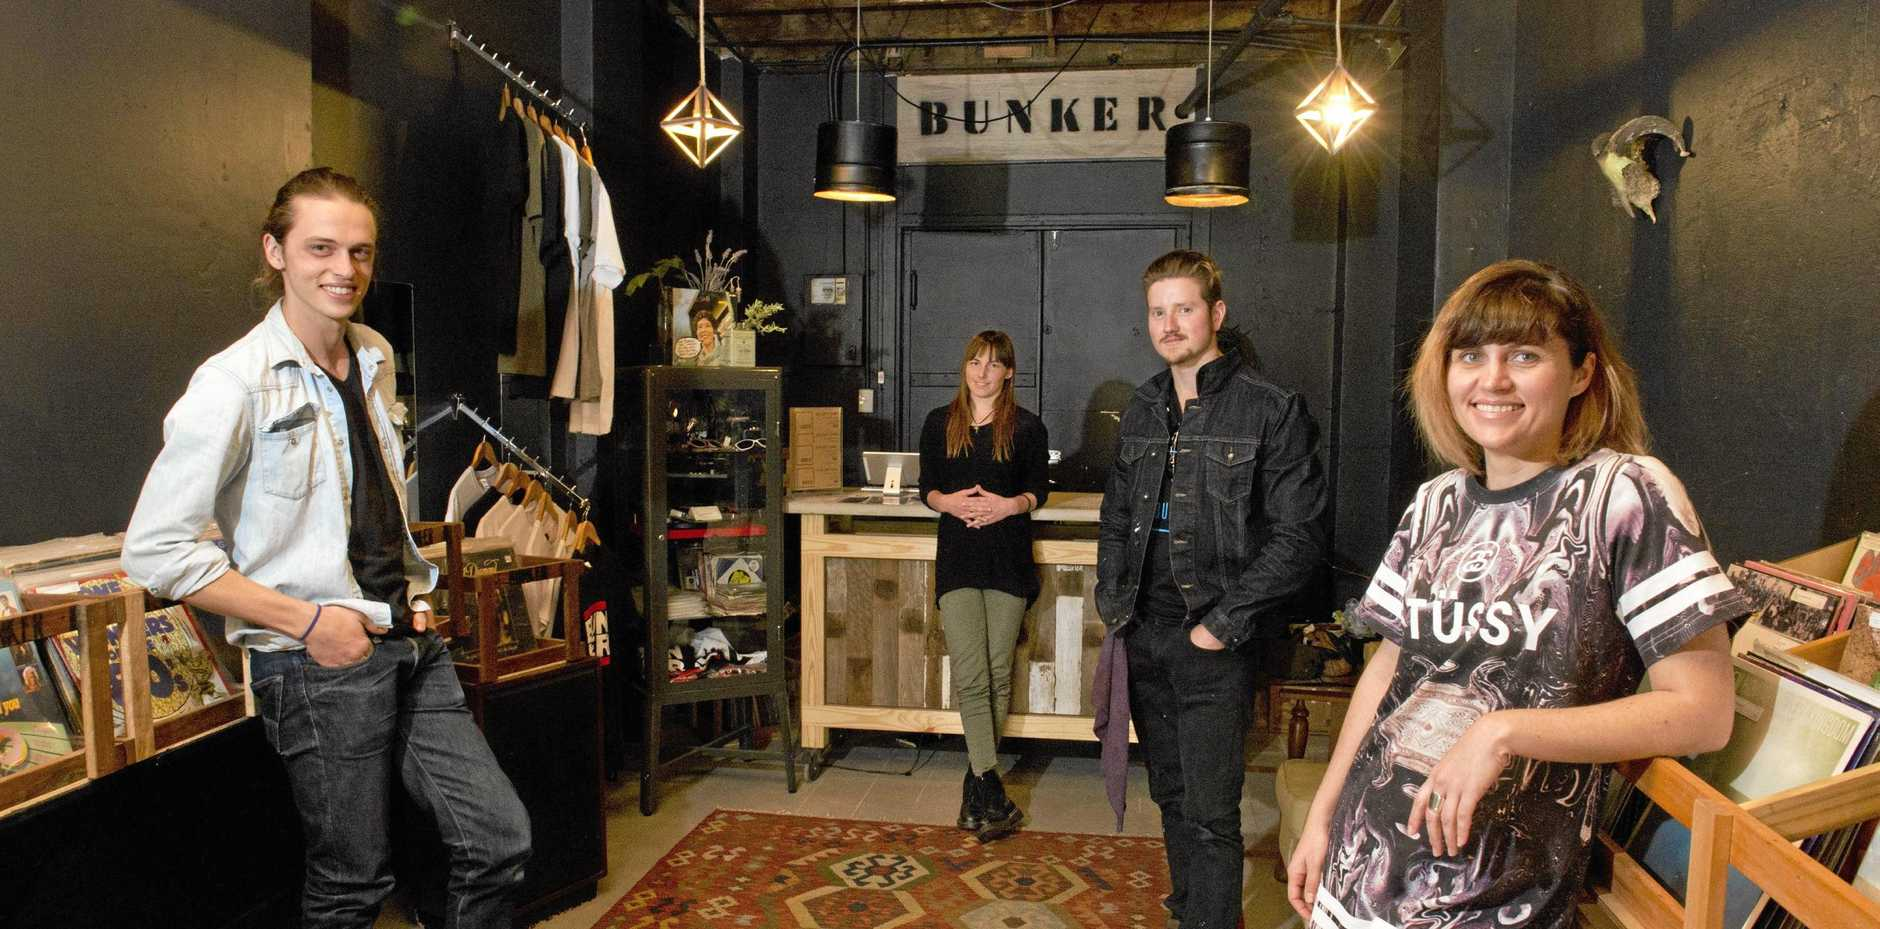 FOND FAREWELL: Head to Bar Wunder today to raise a glass in farewell to beloved vinyl store, Bunker Records.